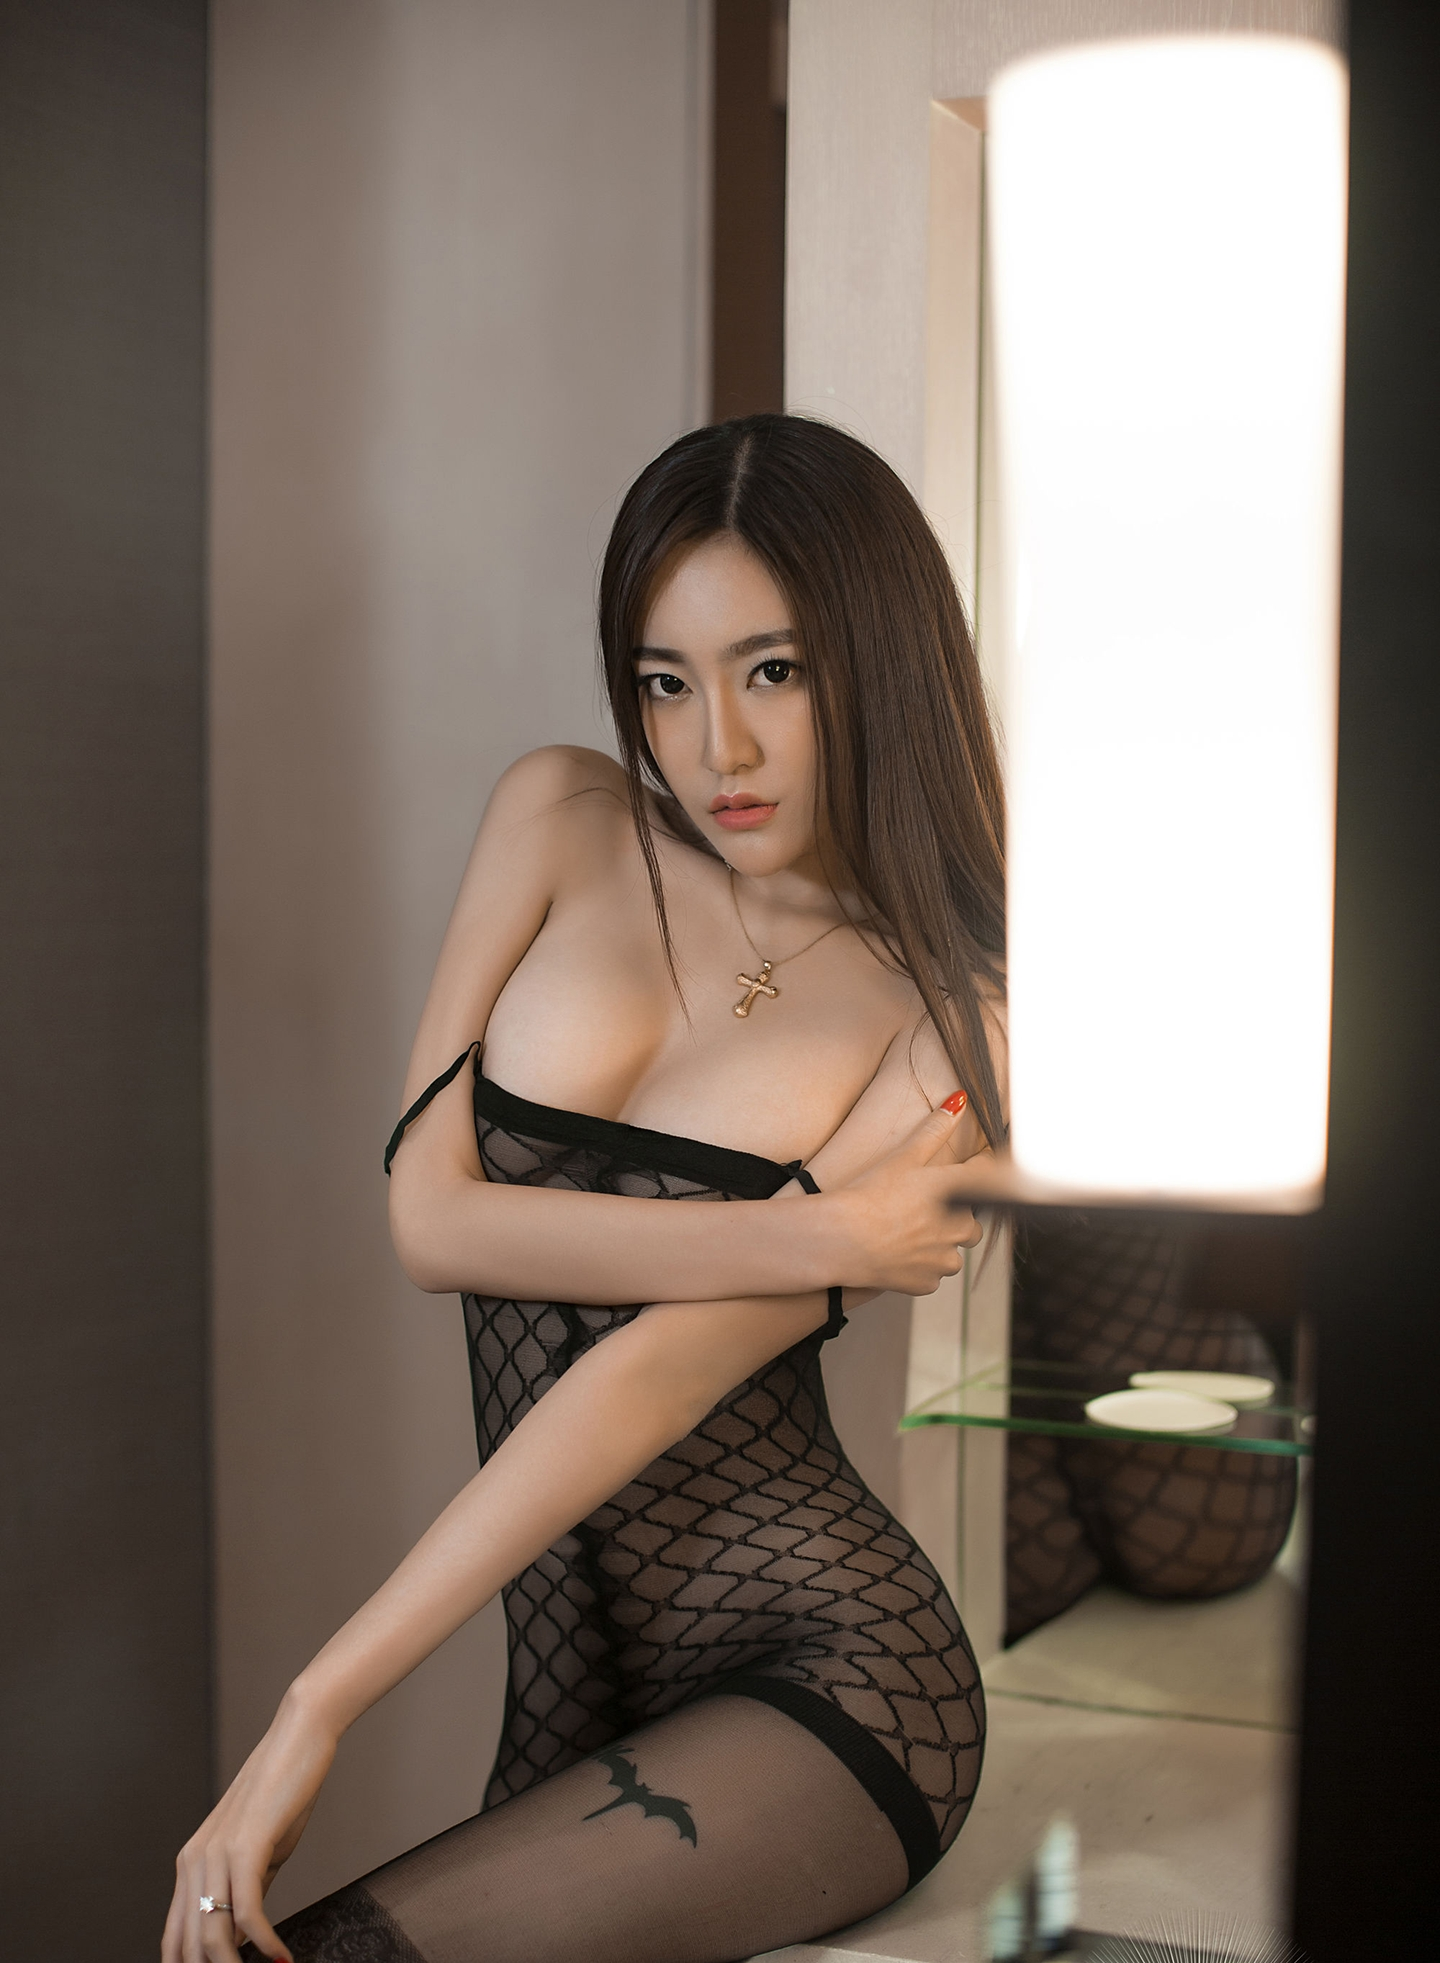 hot Asian woman in mesh lingerie